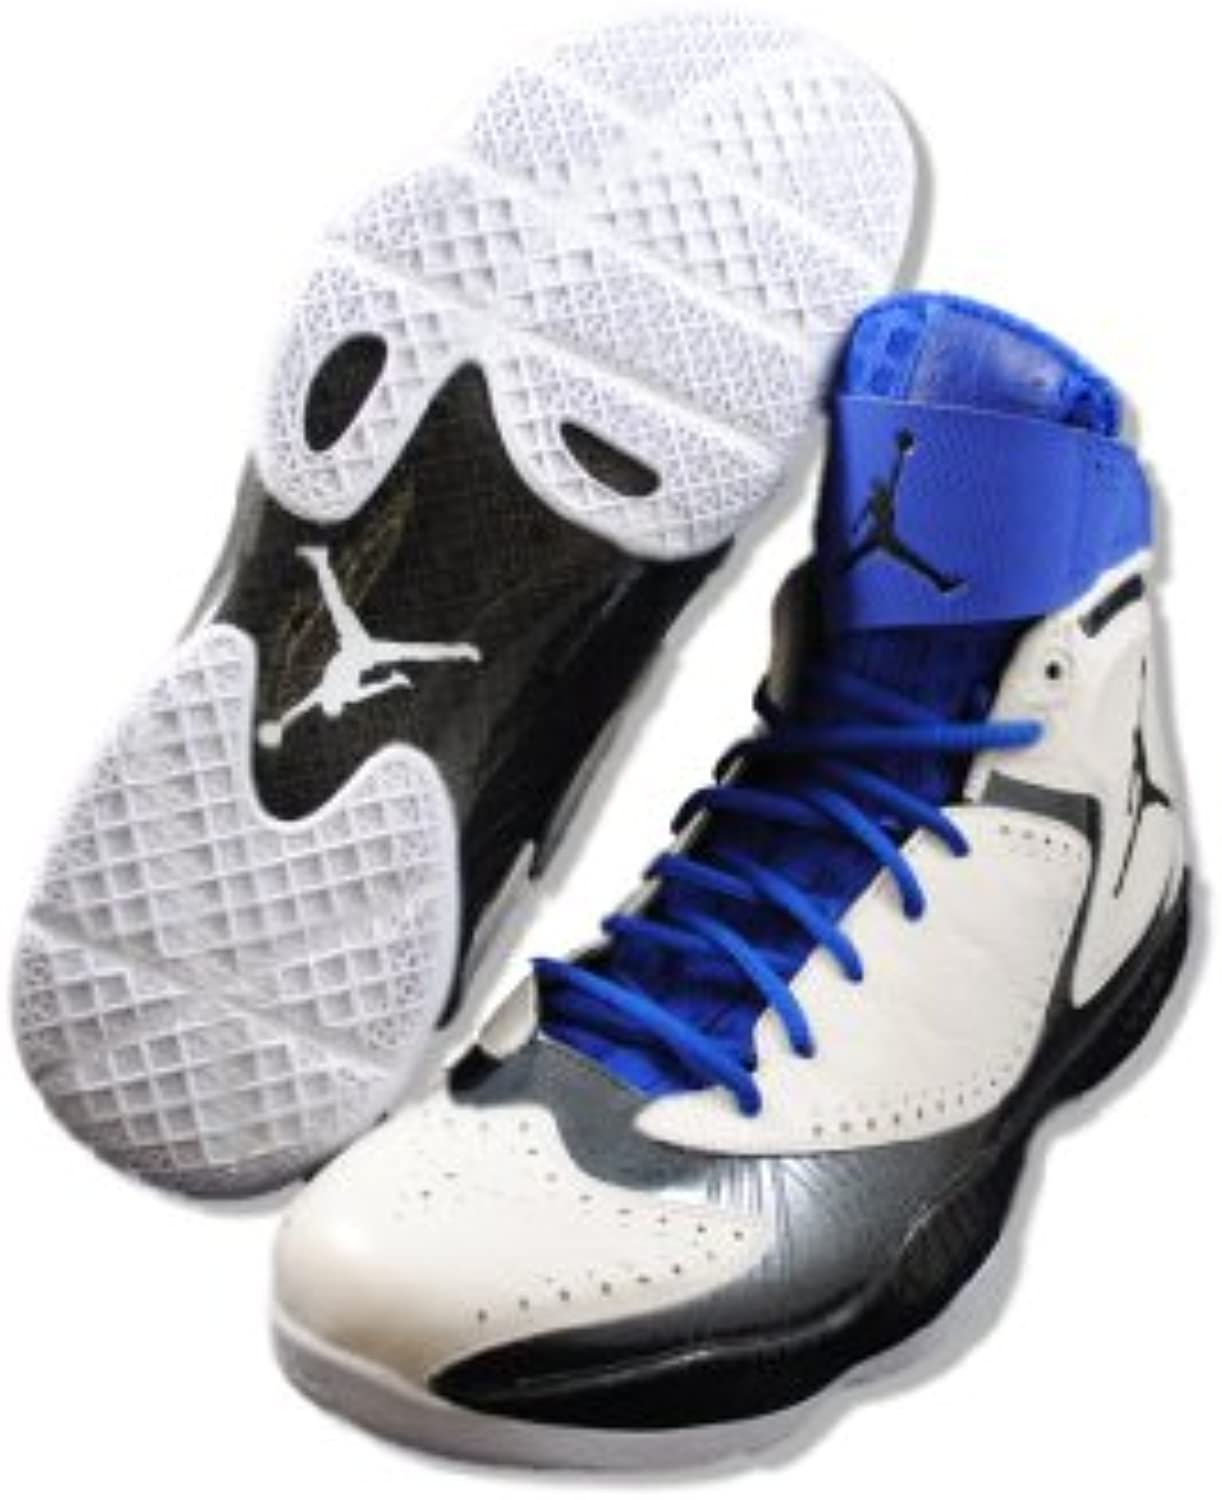 la jordanie 2012 508319 e basketball masculin pointure 13 508319 2012 181, blanc / noir / royal a8700b